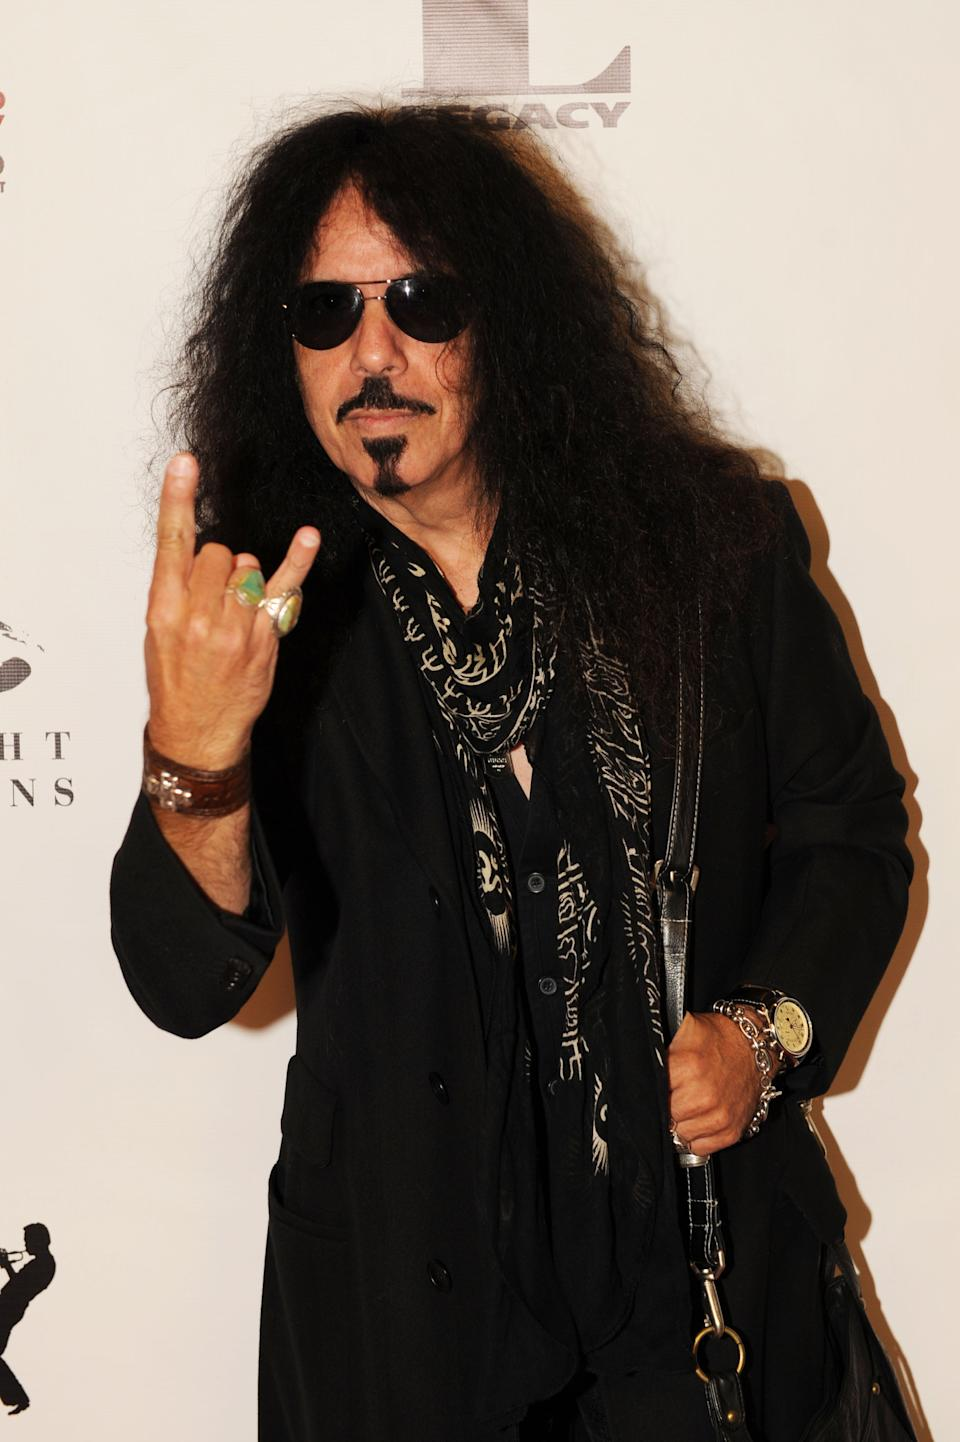 """Frankie Banali arrives at Mr. Musichead Gallery for the """"Miles Davis: The Collected Artwork"""" Launch Party on November 7, 2013 in Los Angeles, California.  (Photo by Joshua Blanchard/Getty Images)"""